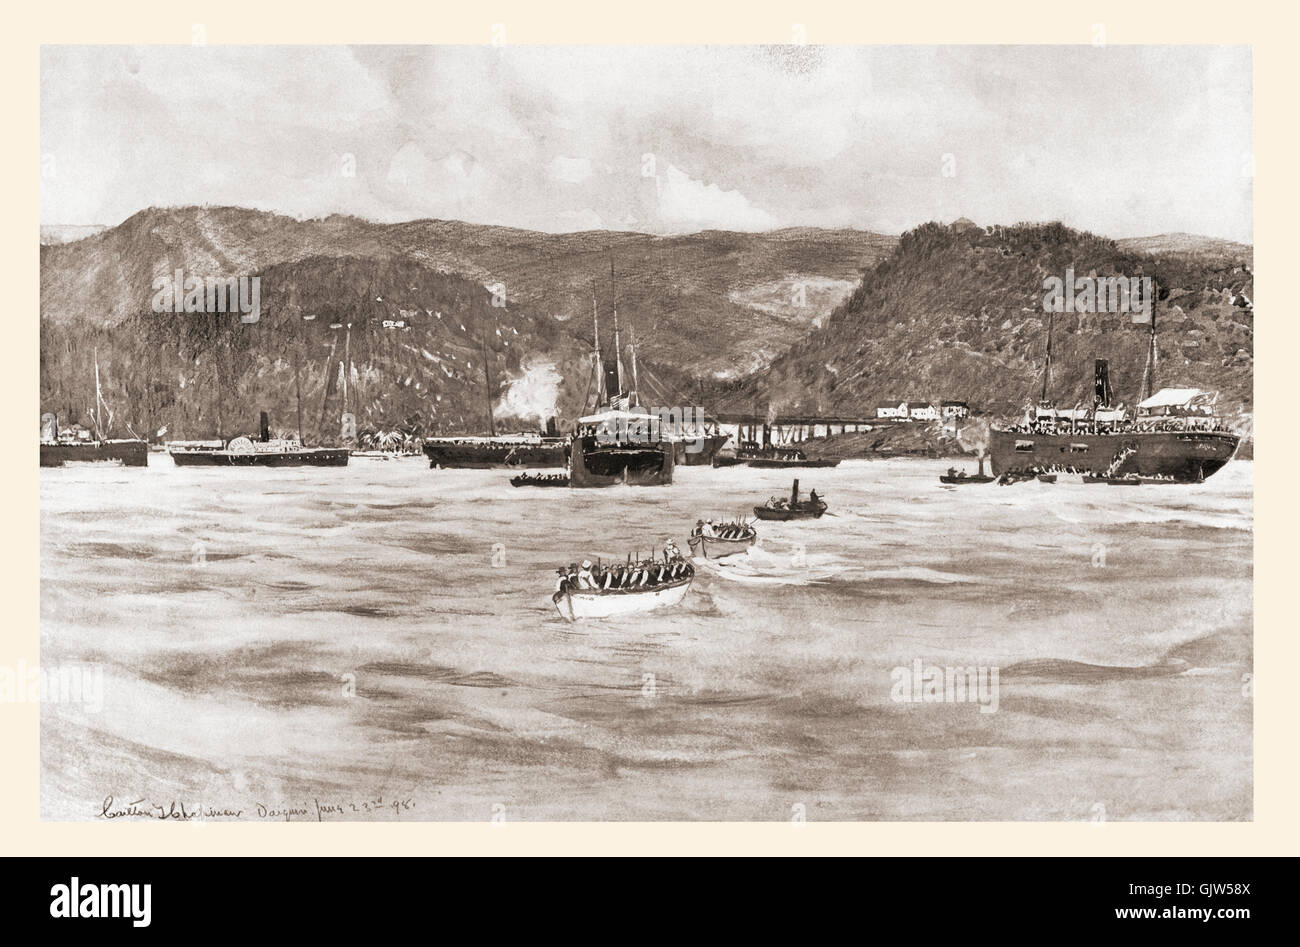 The landing of the Fifth Army Corps under General William R. Shafter at Daiquirí, Cuba, June 22 to 24, 1898 - Stock Image